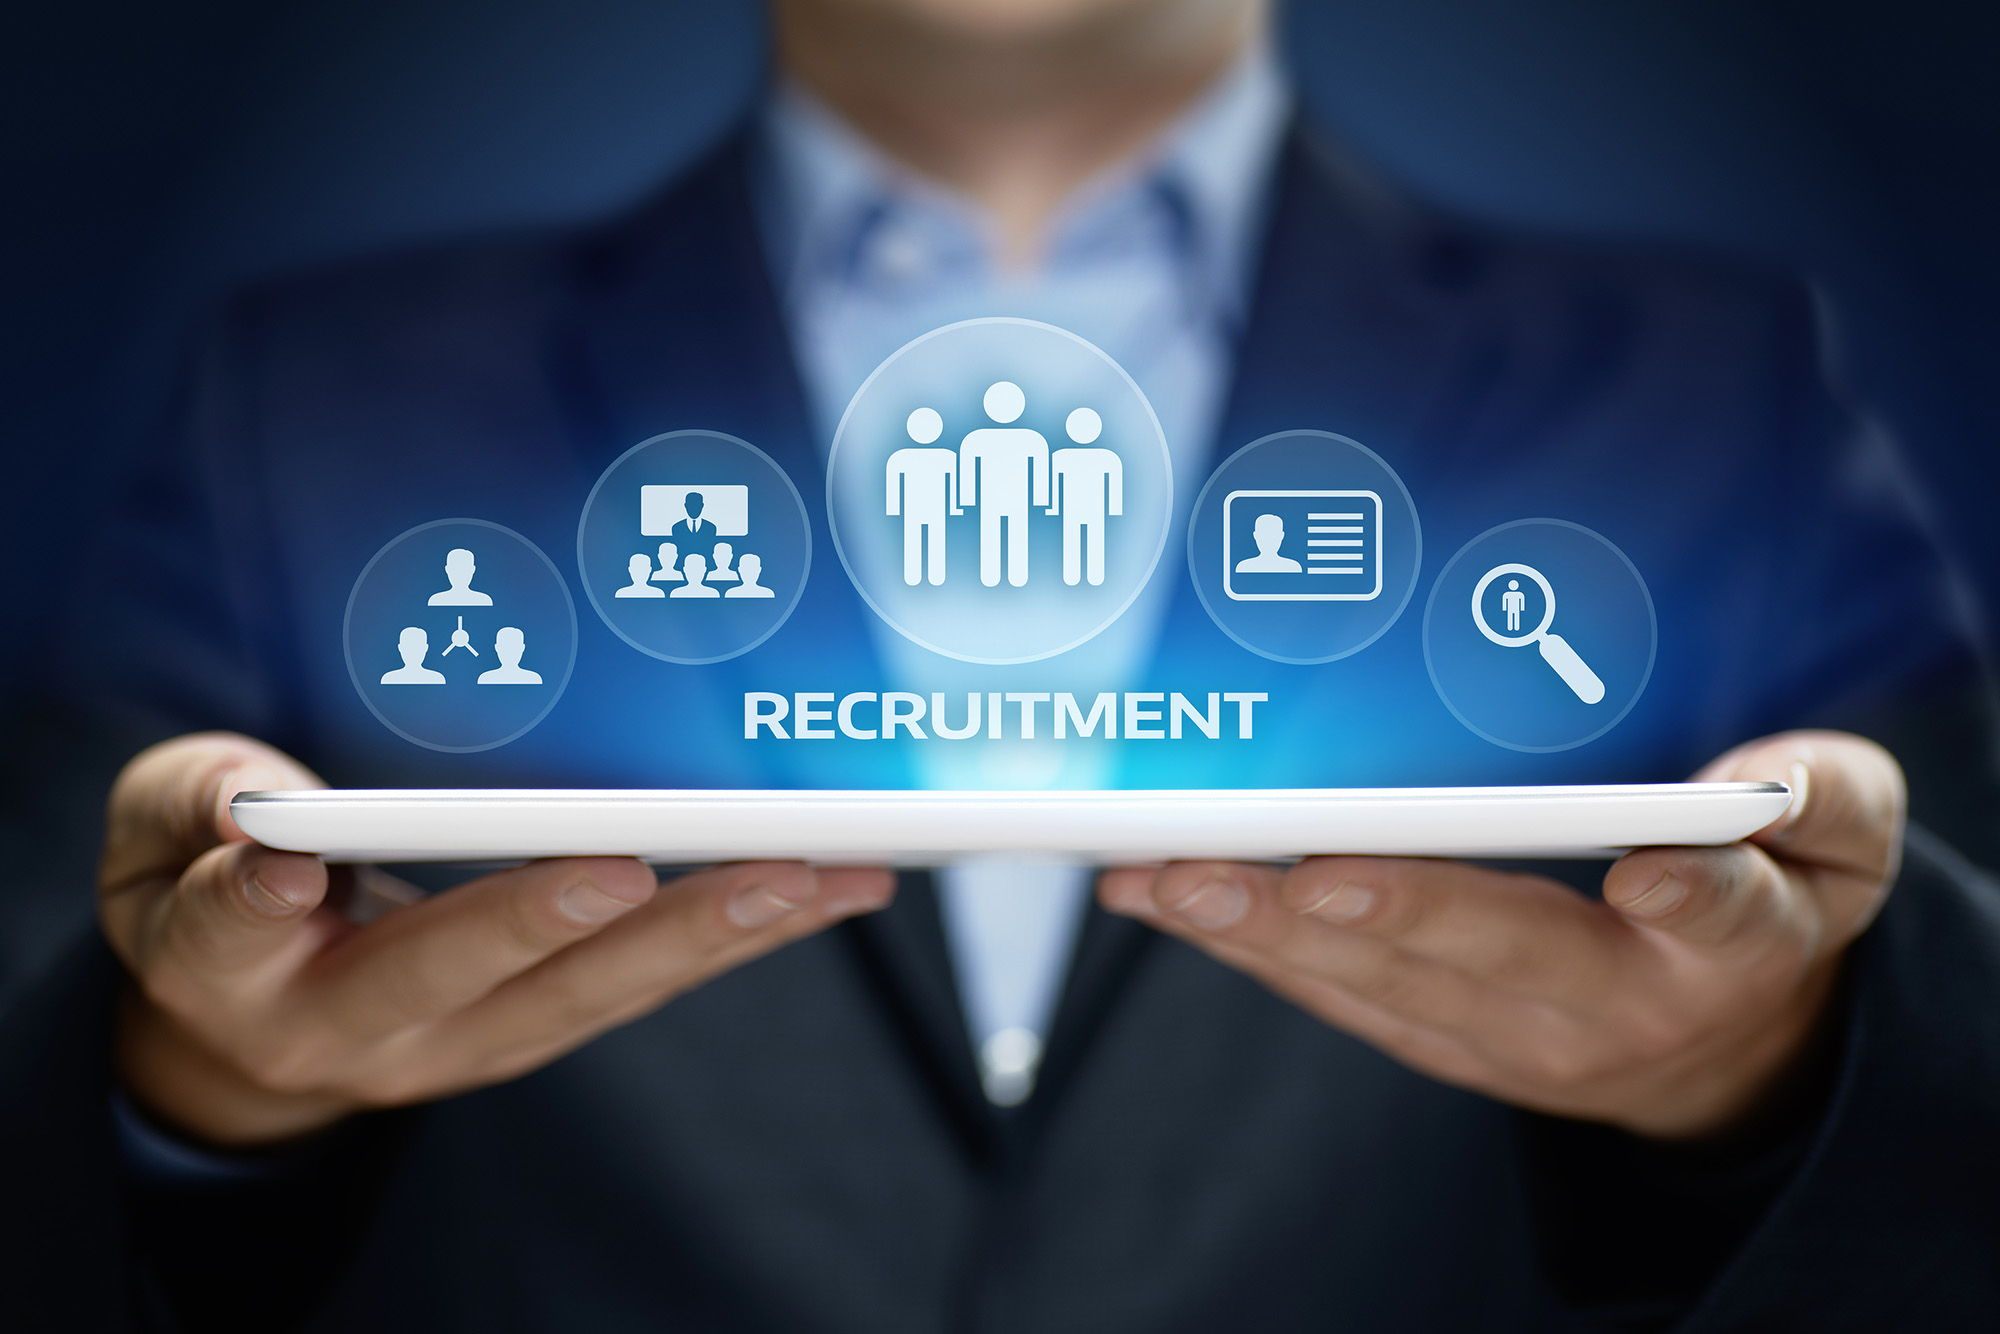 FAVO Recruitment-Employer Page Image